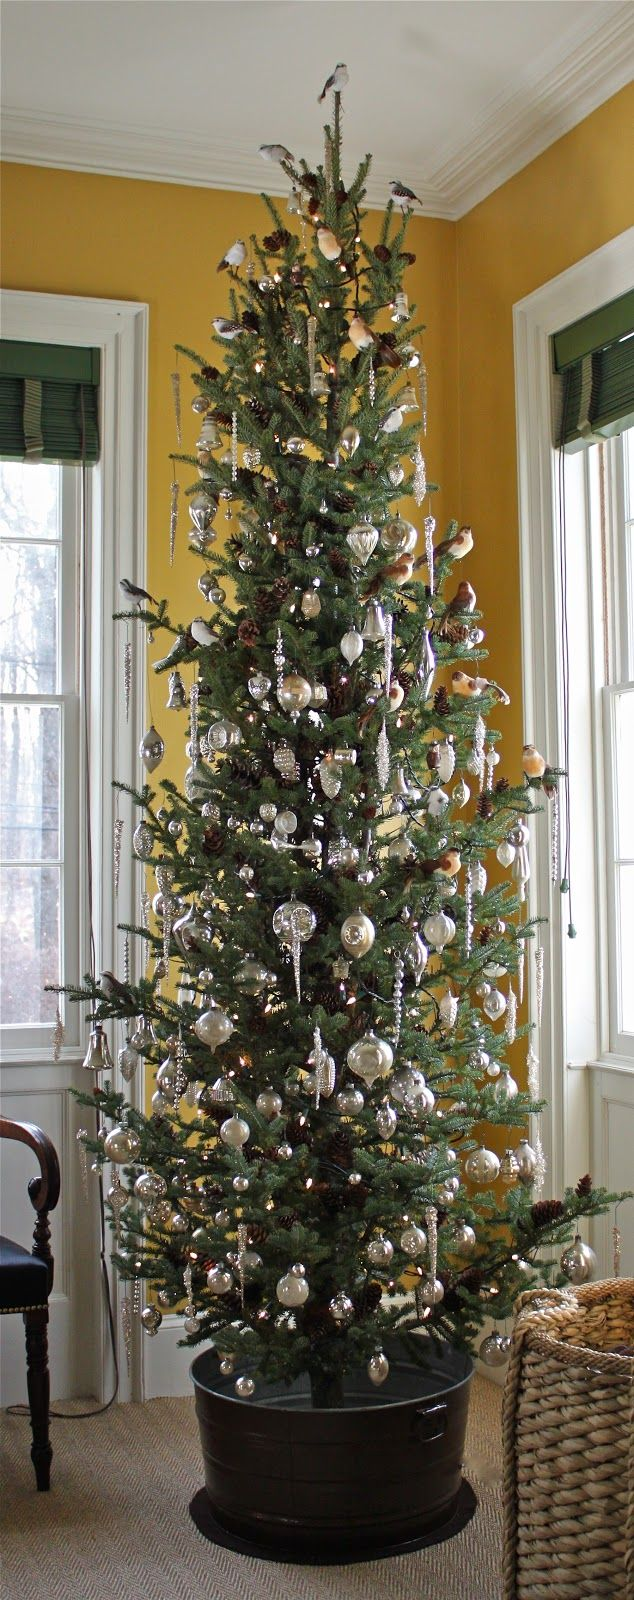 Reggie Darling: Christmas Tree Wishes to You and Yours